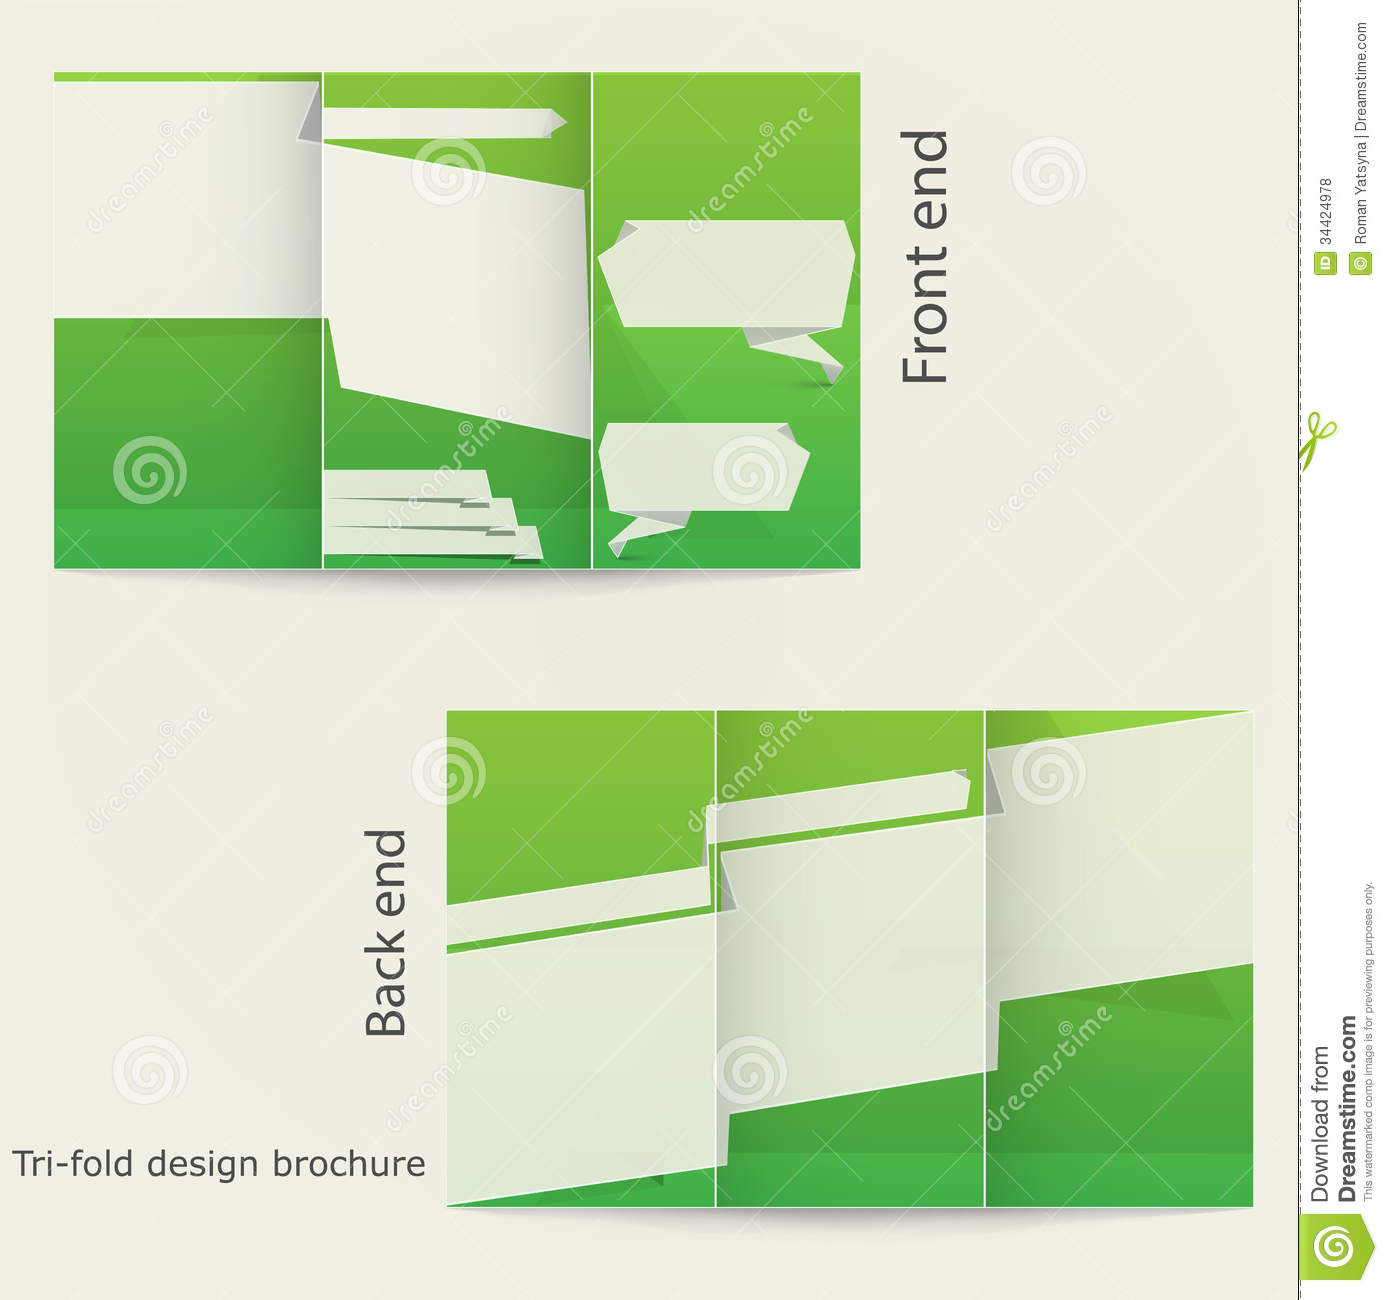 12 tri fold brochure template design images tri fold for Tri folded brochure templates